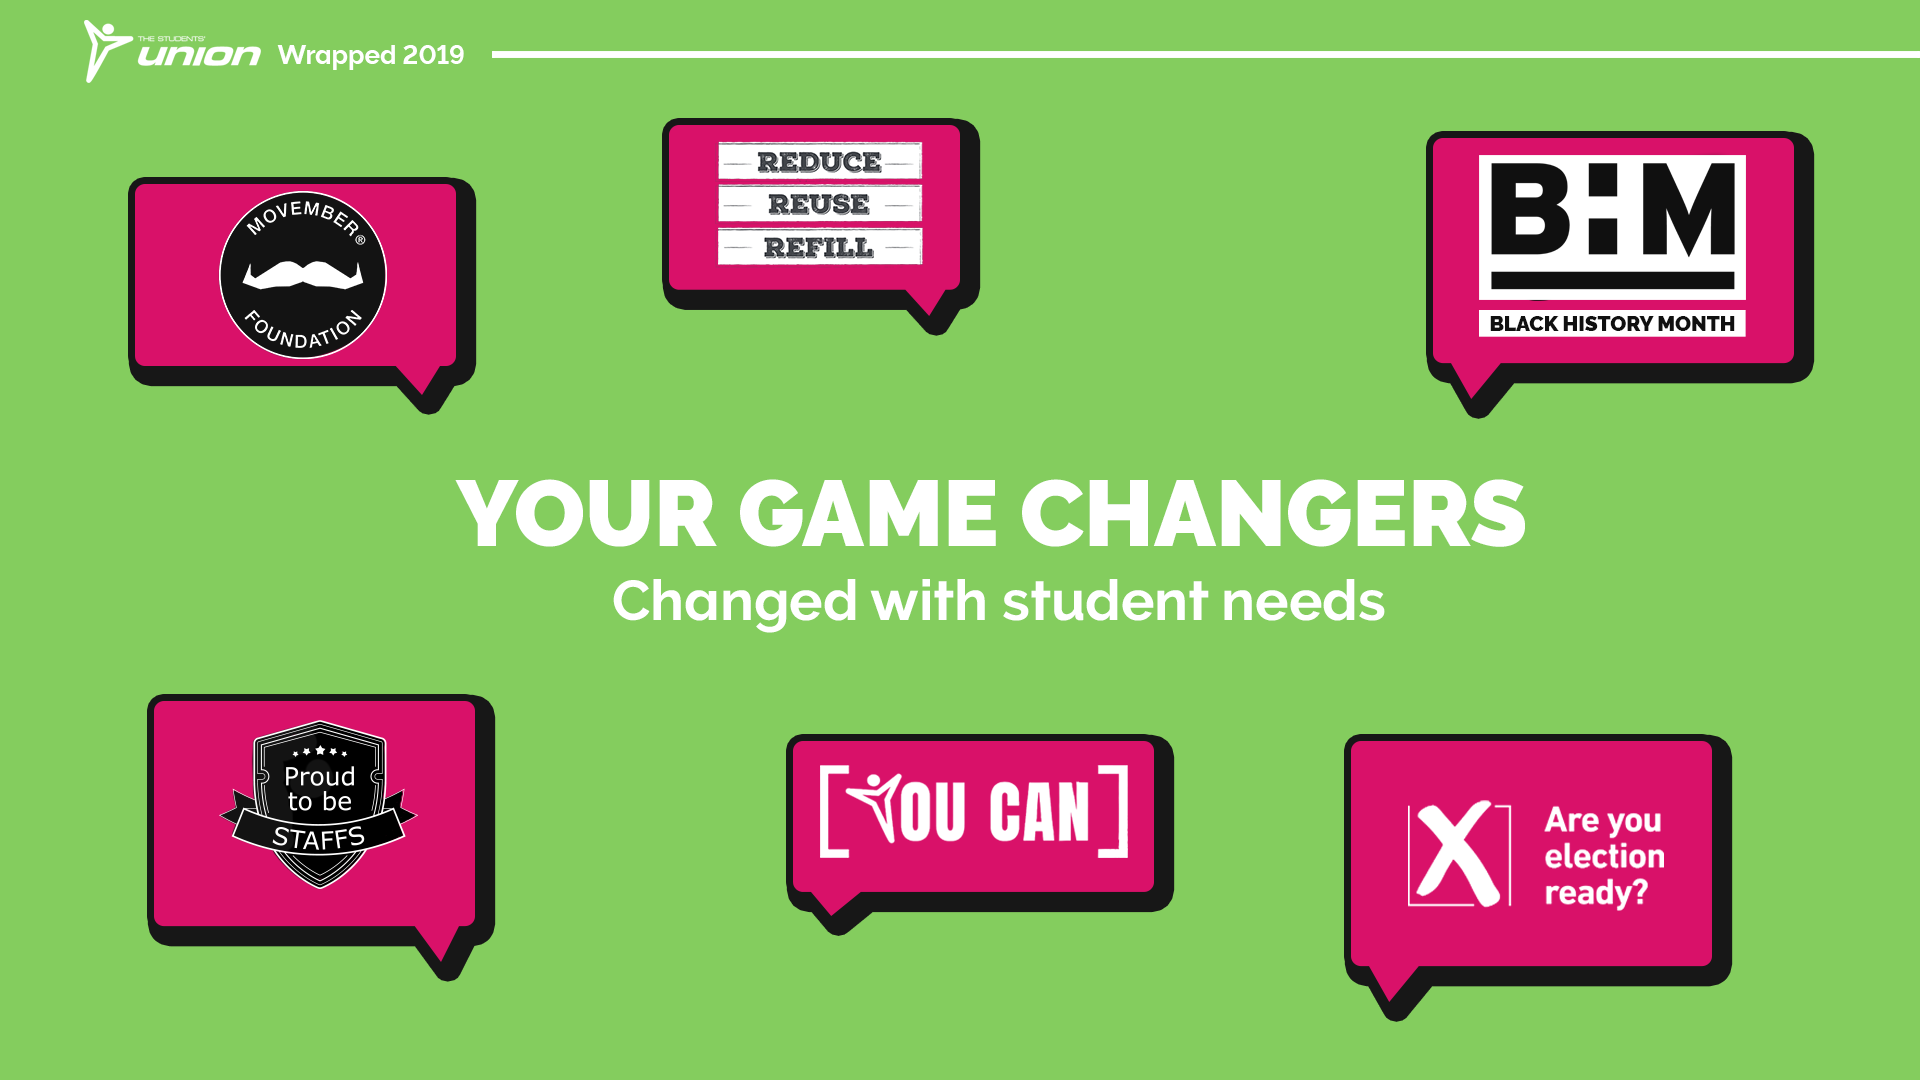 Your Game Changers changed with student needs.